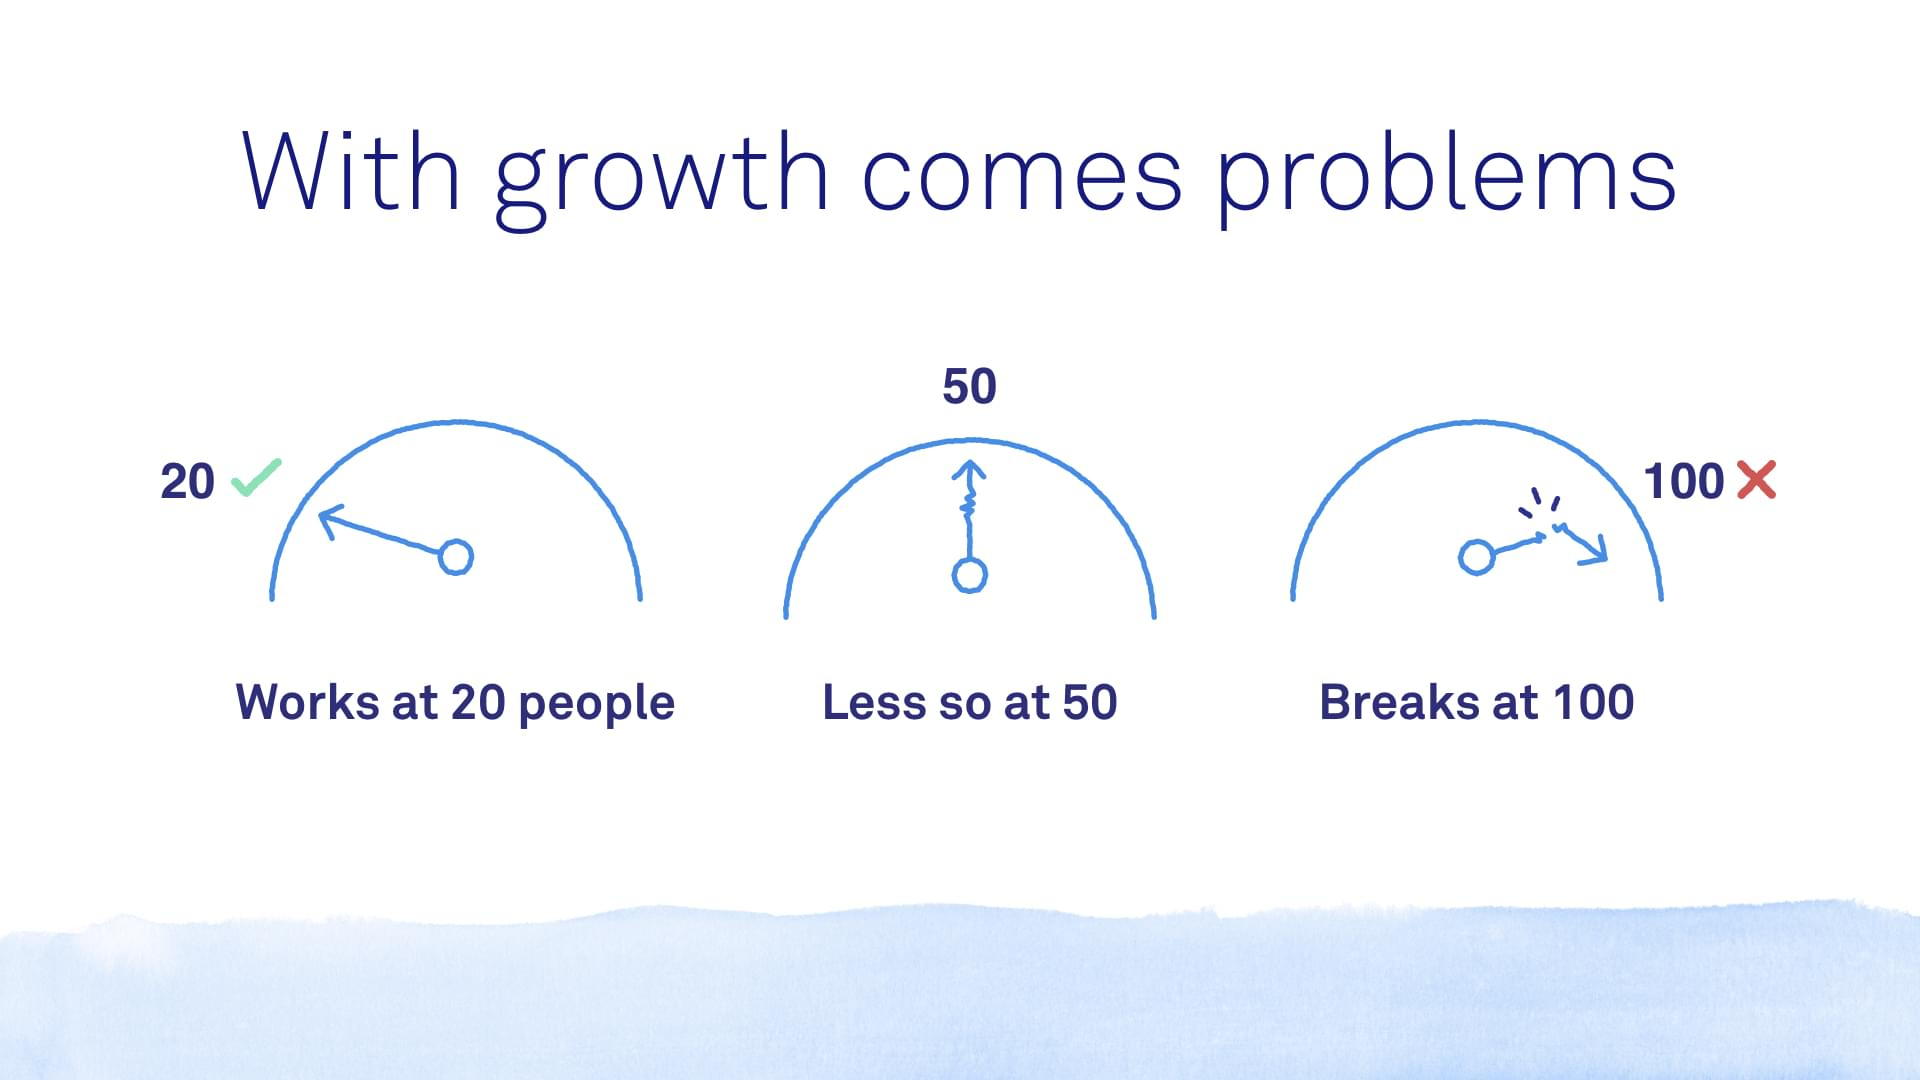 With growth comes problems